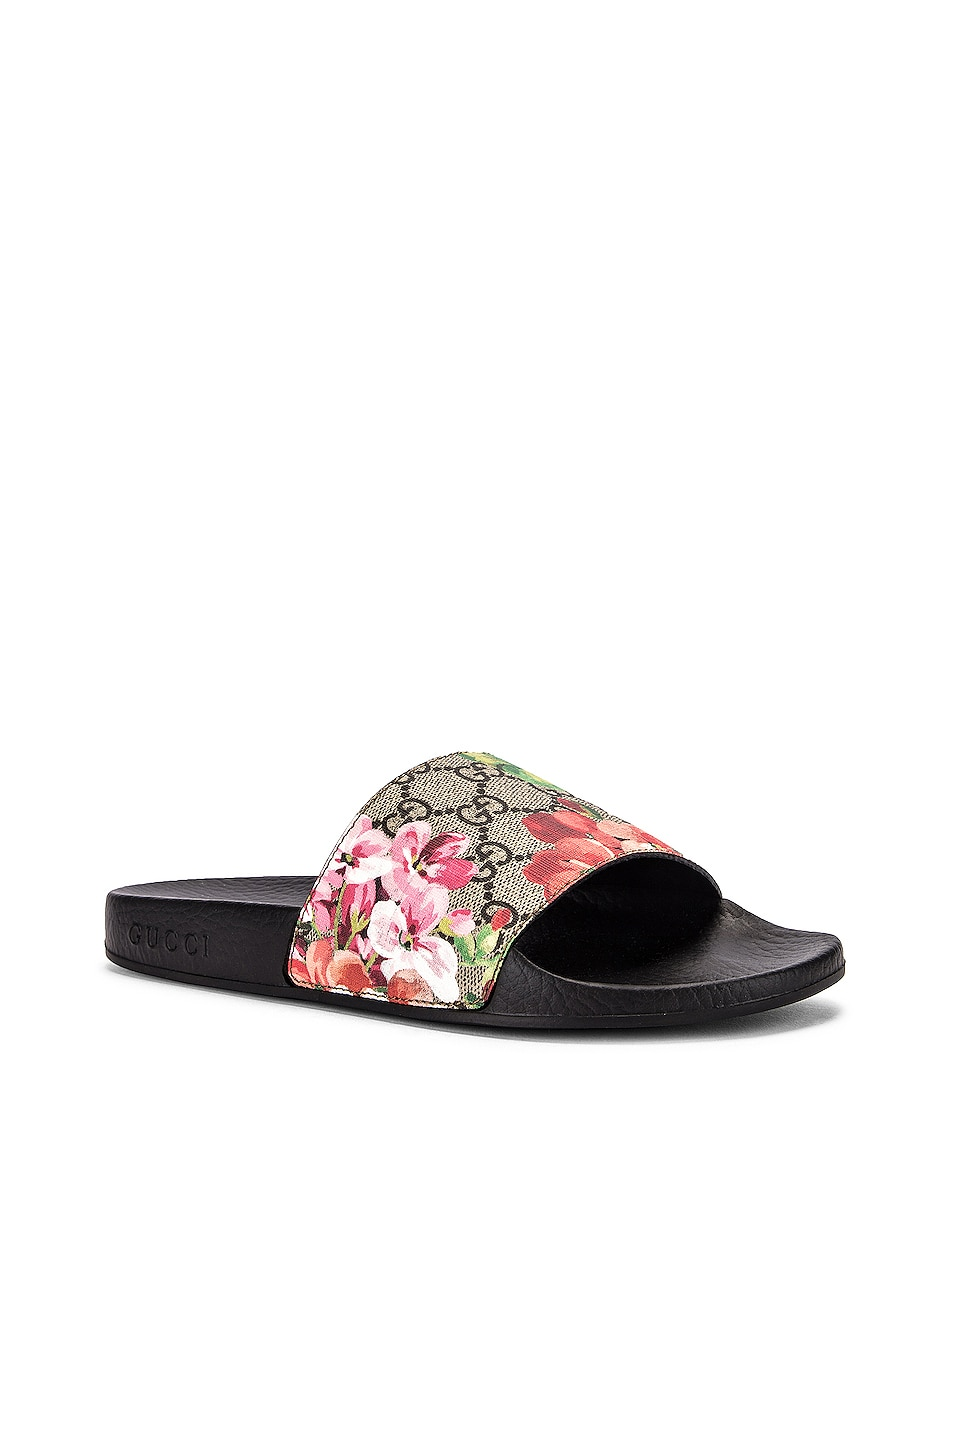 Image 3 of Gucci Pursuit GG Supreme Flora Slides in Beige Ebony & Multicolor